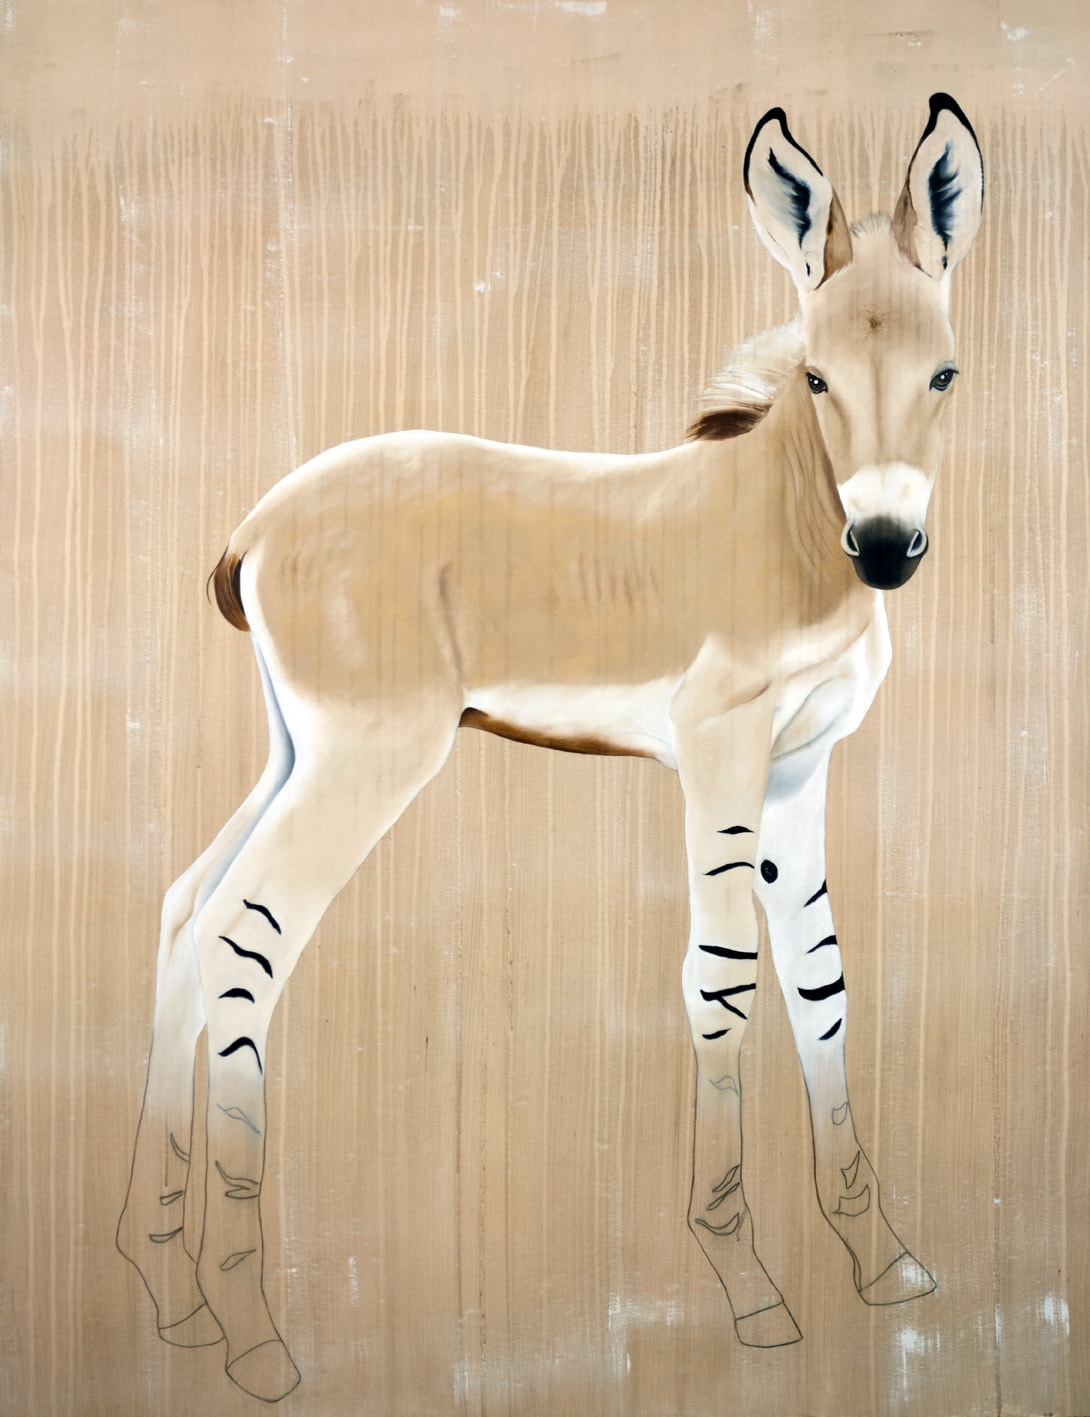 EQUUS ASINUS AFRICANUS african%20wildass%20wild%20donkey%20equus%20asinus%20africanus%20threatened%20endangered%20thierry%20bischextinction Thierry Bisch painter animals painting art decoration hotel design interior luxury nature biodiversity conservation